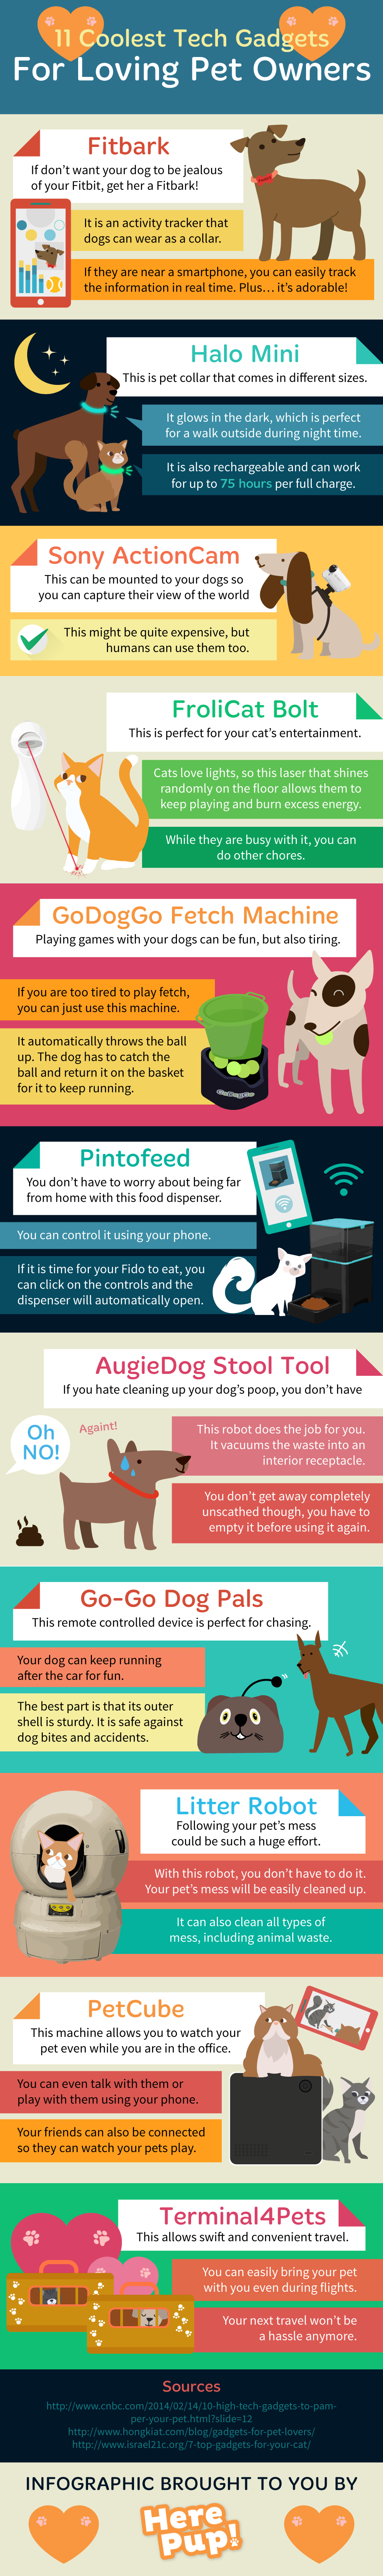 11 Coolest Tech Gadgets For Loving Pet Owners